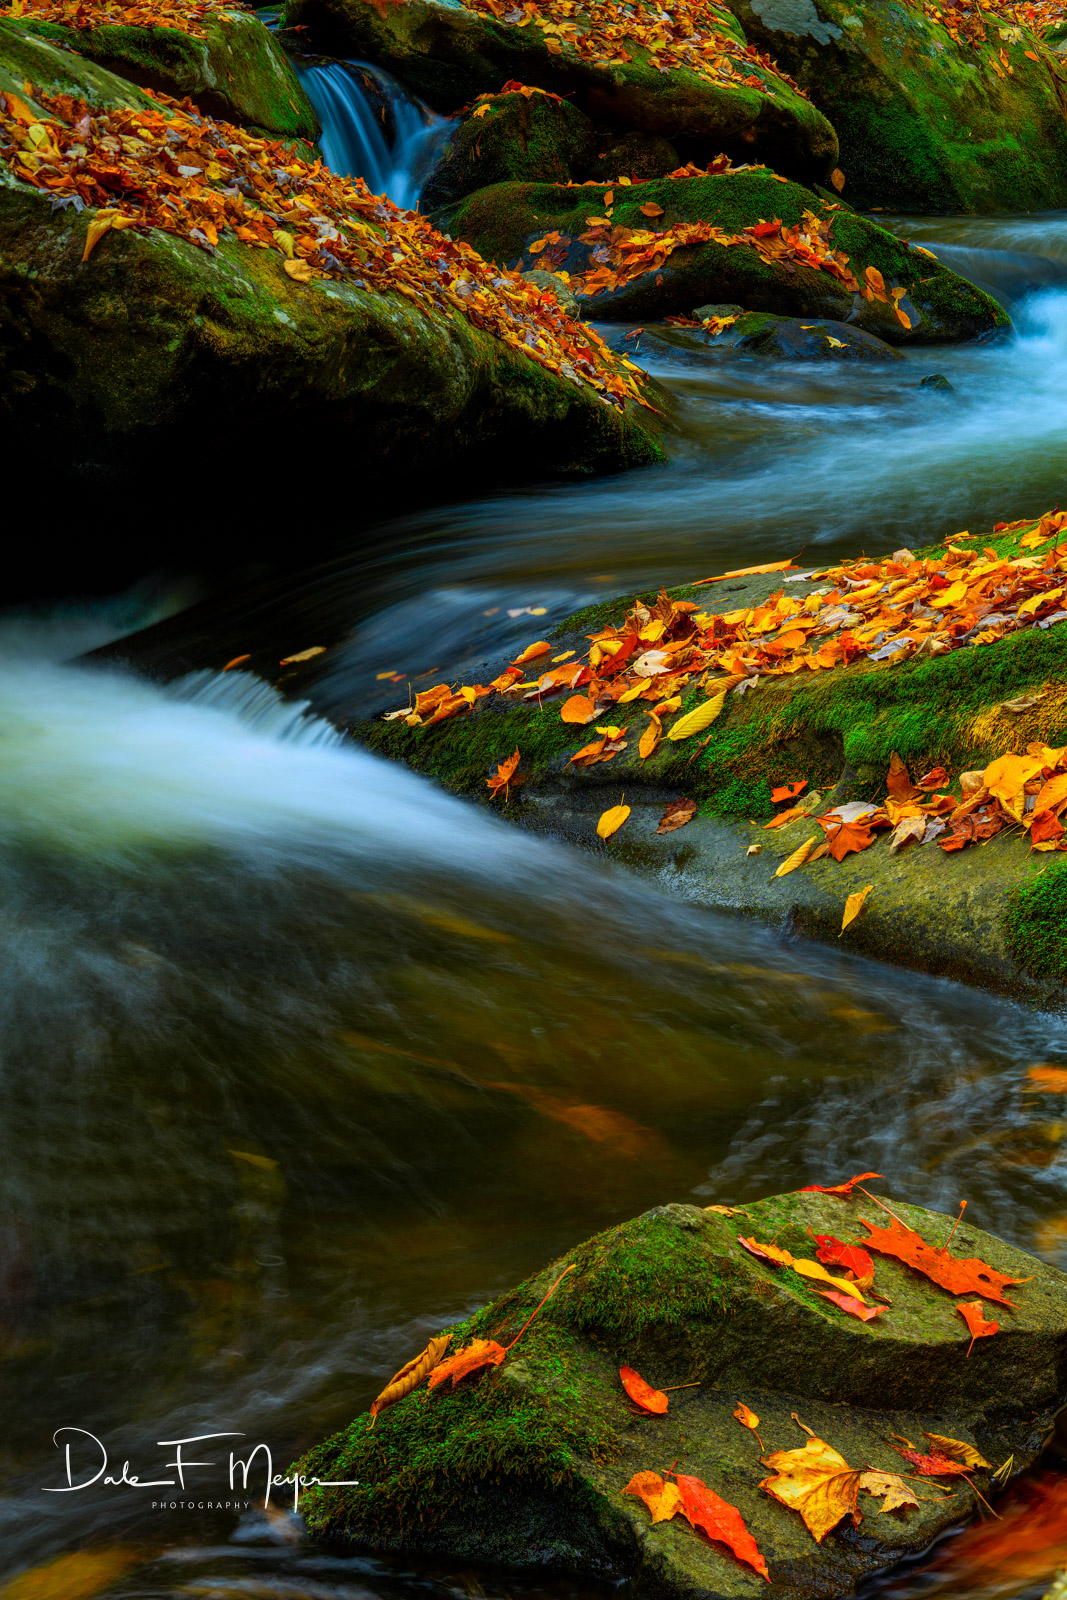 Fall 2015,Great Smokey Mountains,Middle Prong Little River, Tremount, rivers streams and waterfalls gallerie, Leafs, photo